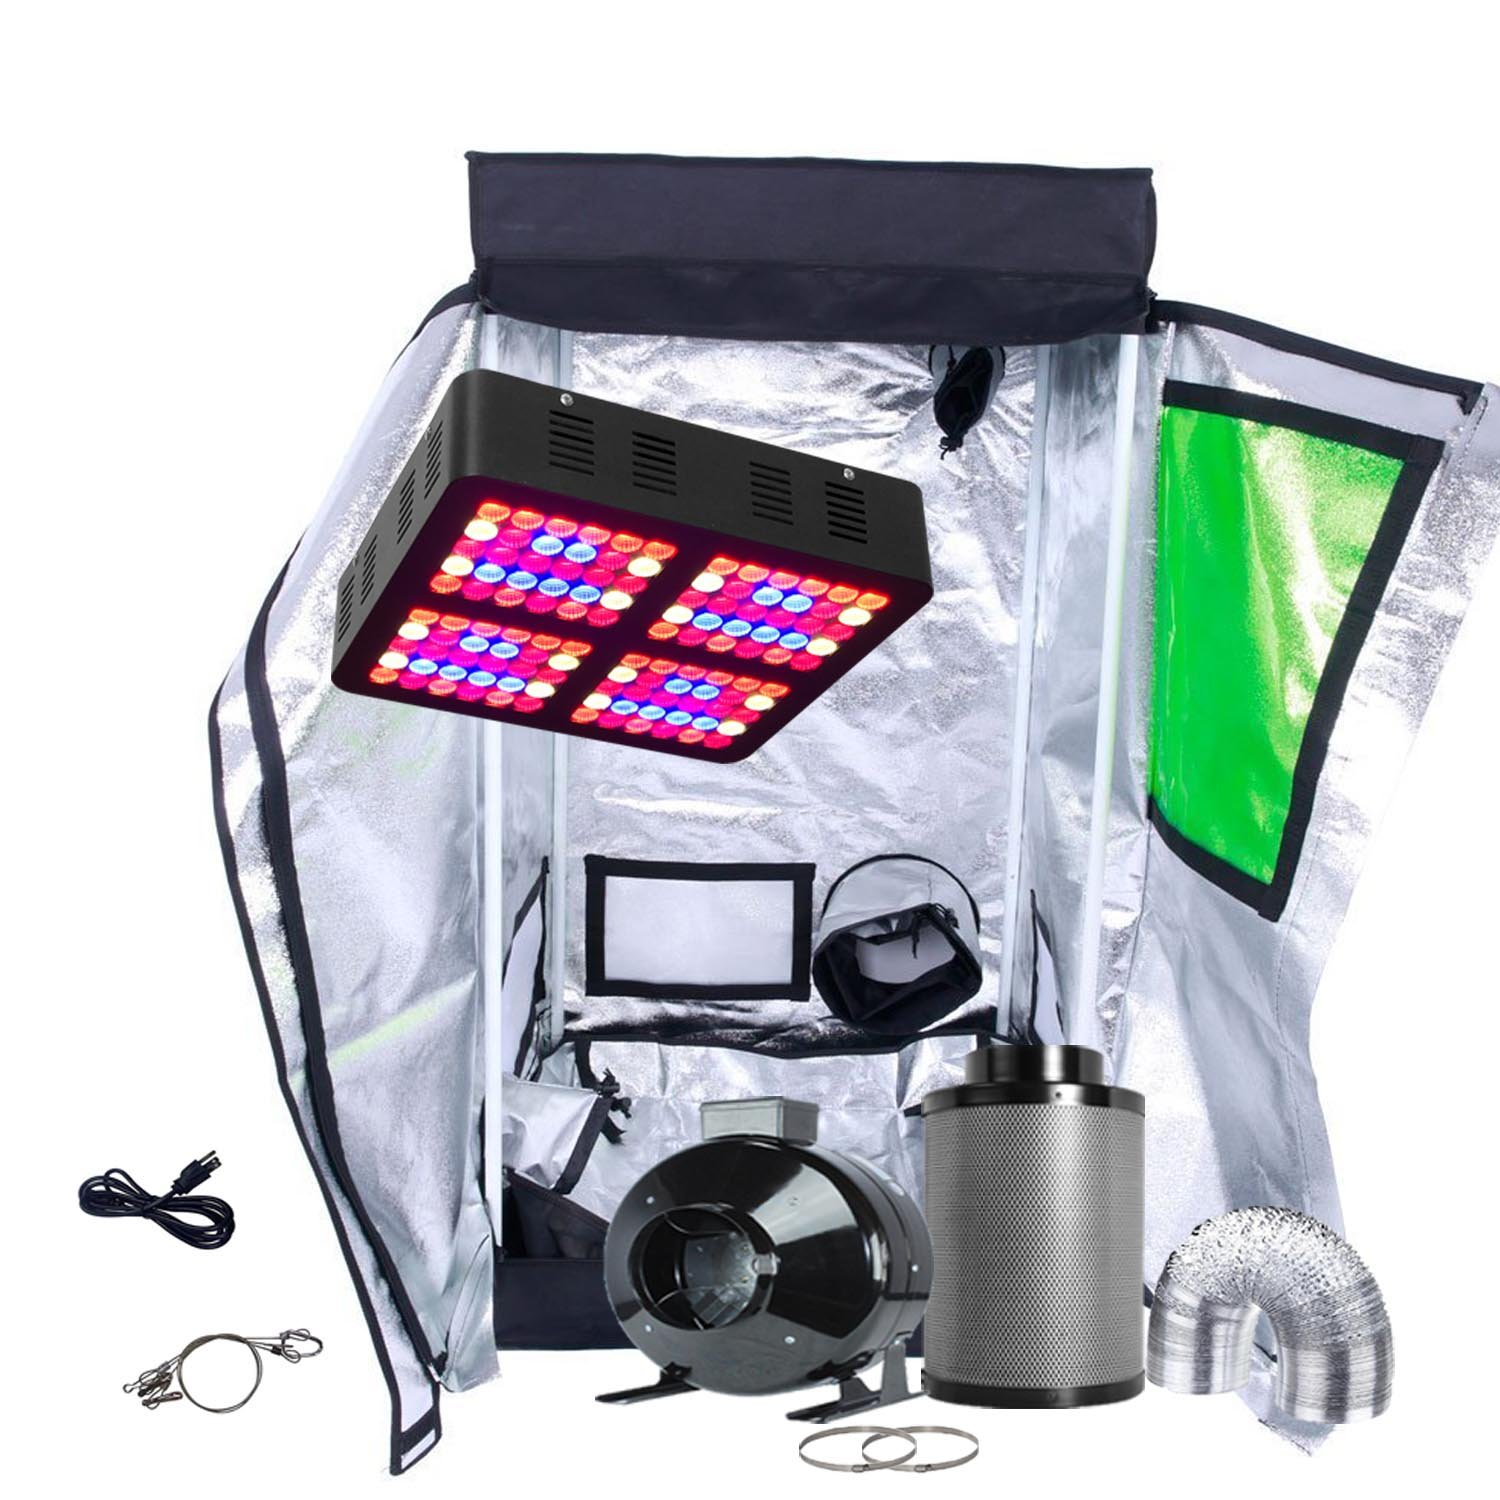 Oppolite LED Grow Tent Kit Complete Package LED 600W Grow Light Kit +4'' Fan Filter Ventilation Kit +24''X24''X48''T Grow Tent Setup Hydroponics Indoor Plants Growing System (LED600W+24''X24''X48''T-Door+4'')